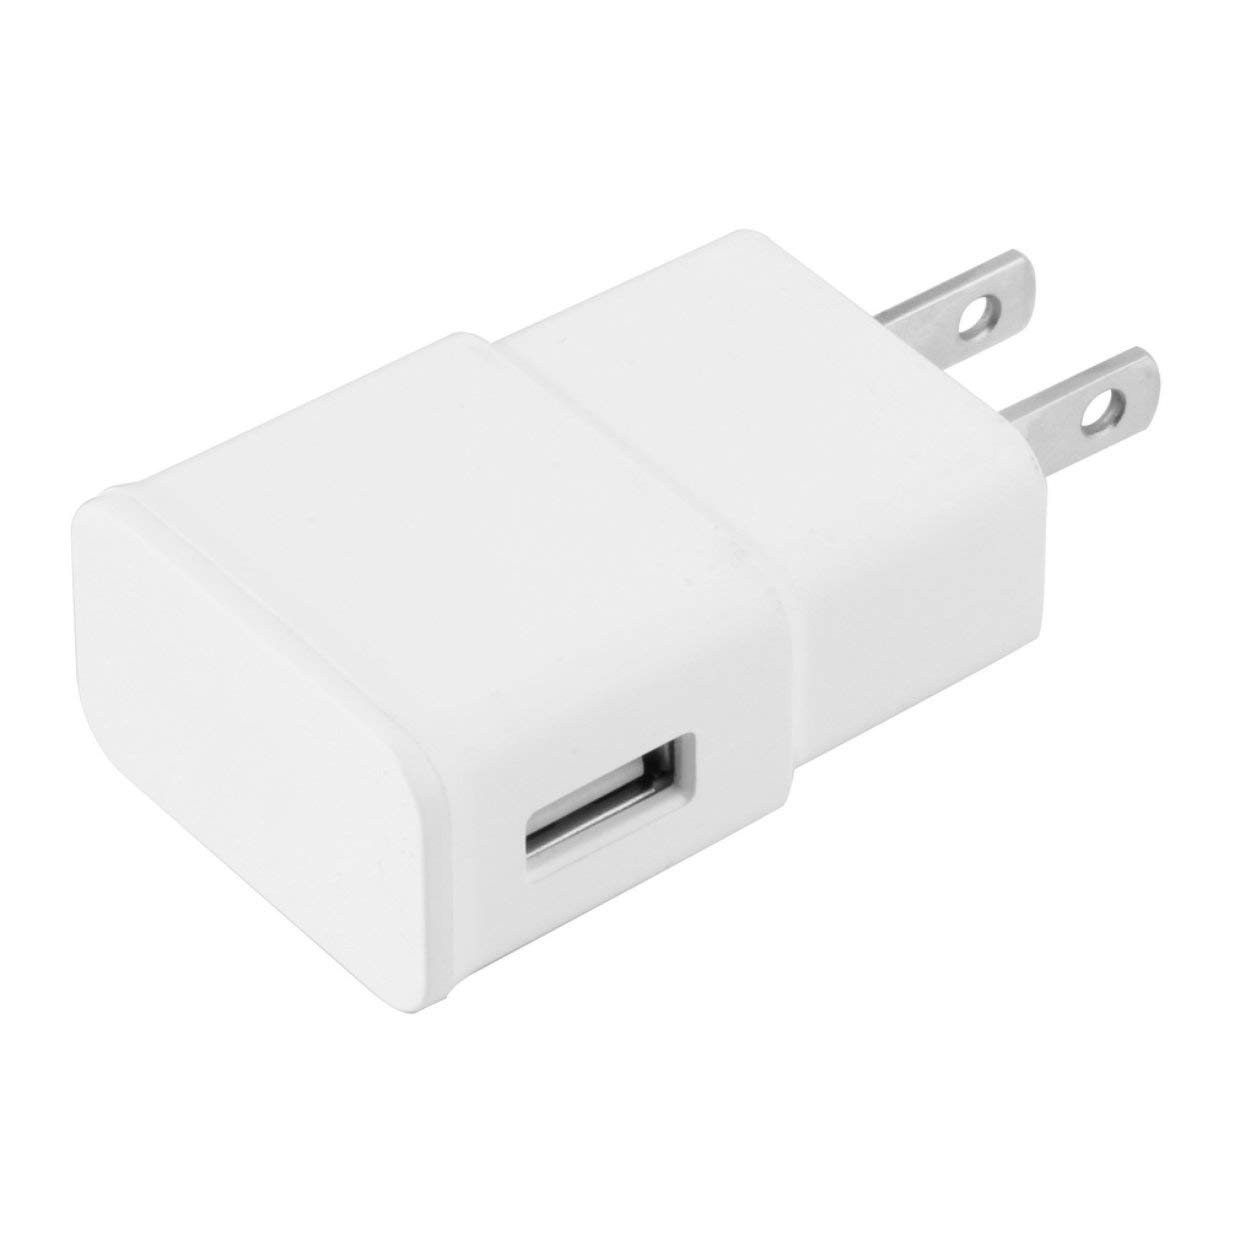 Qewmsg US Wall Charger for Samsung Galaxy Note 2 II N7100 S4 S3